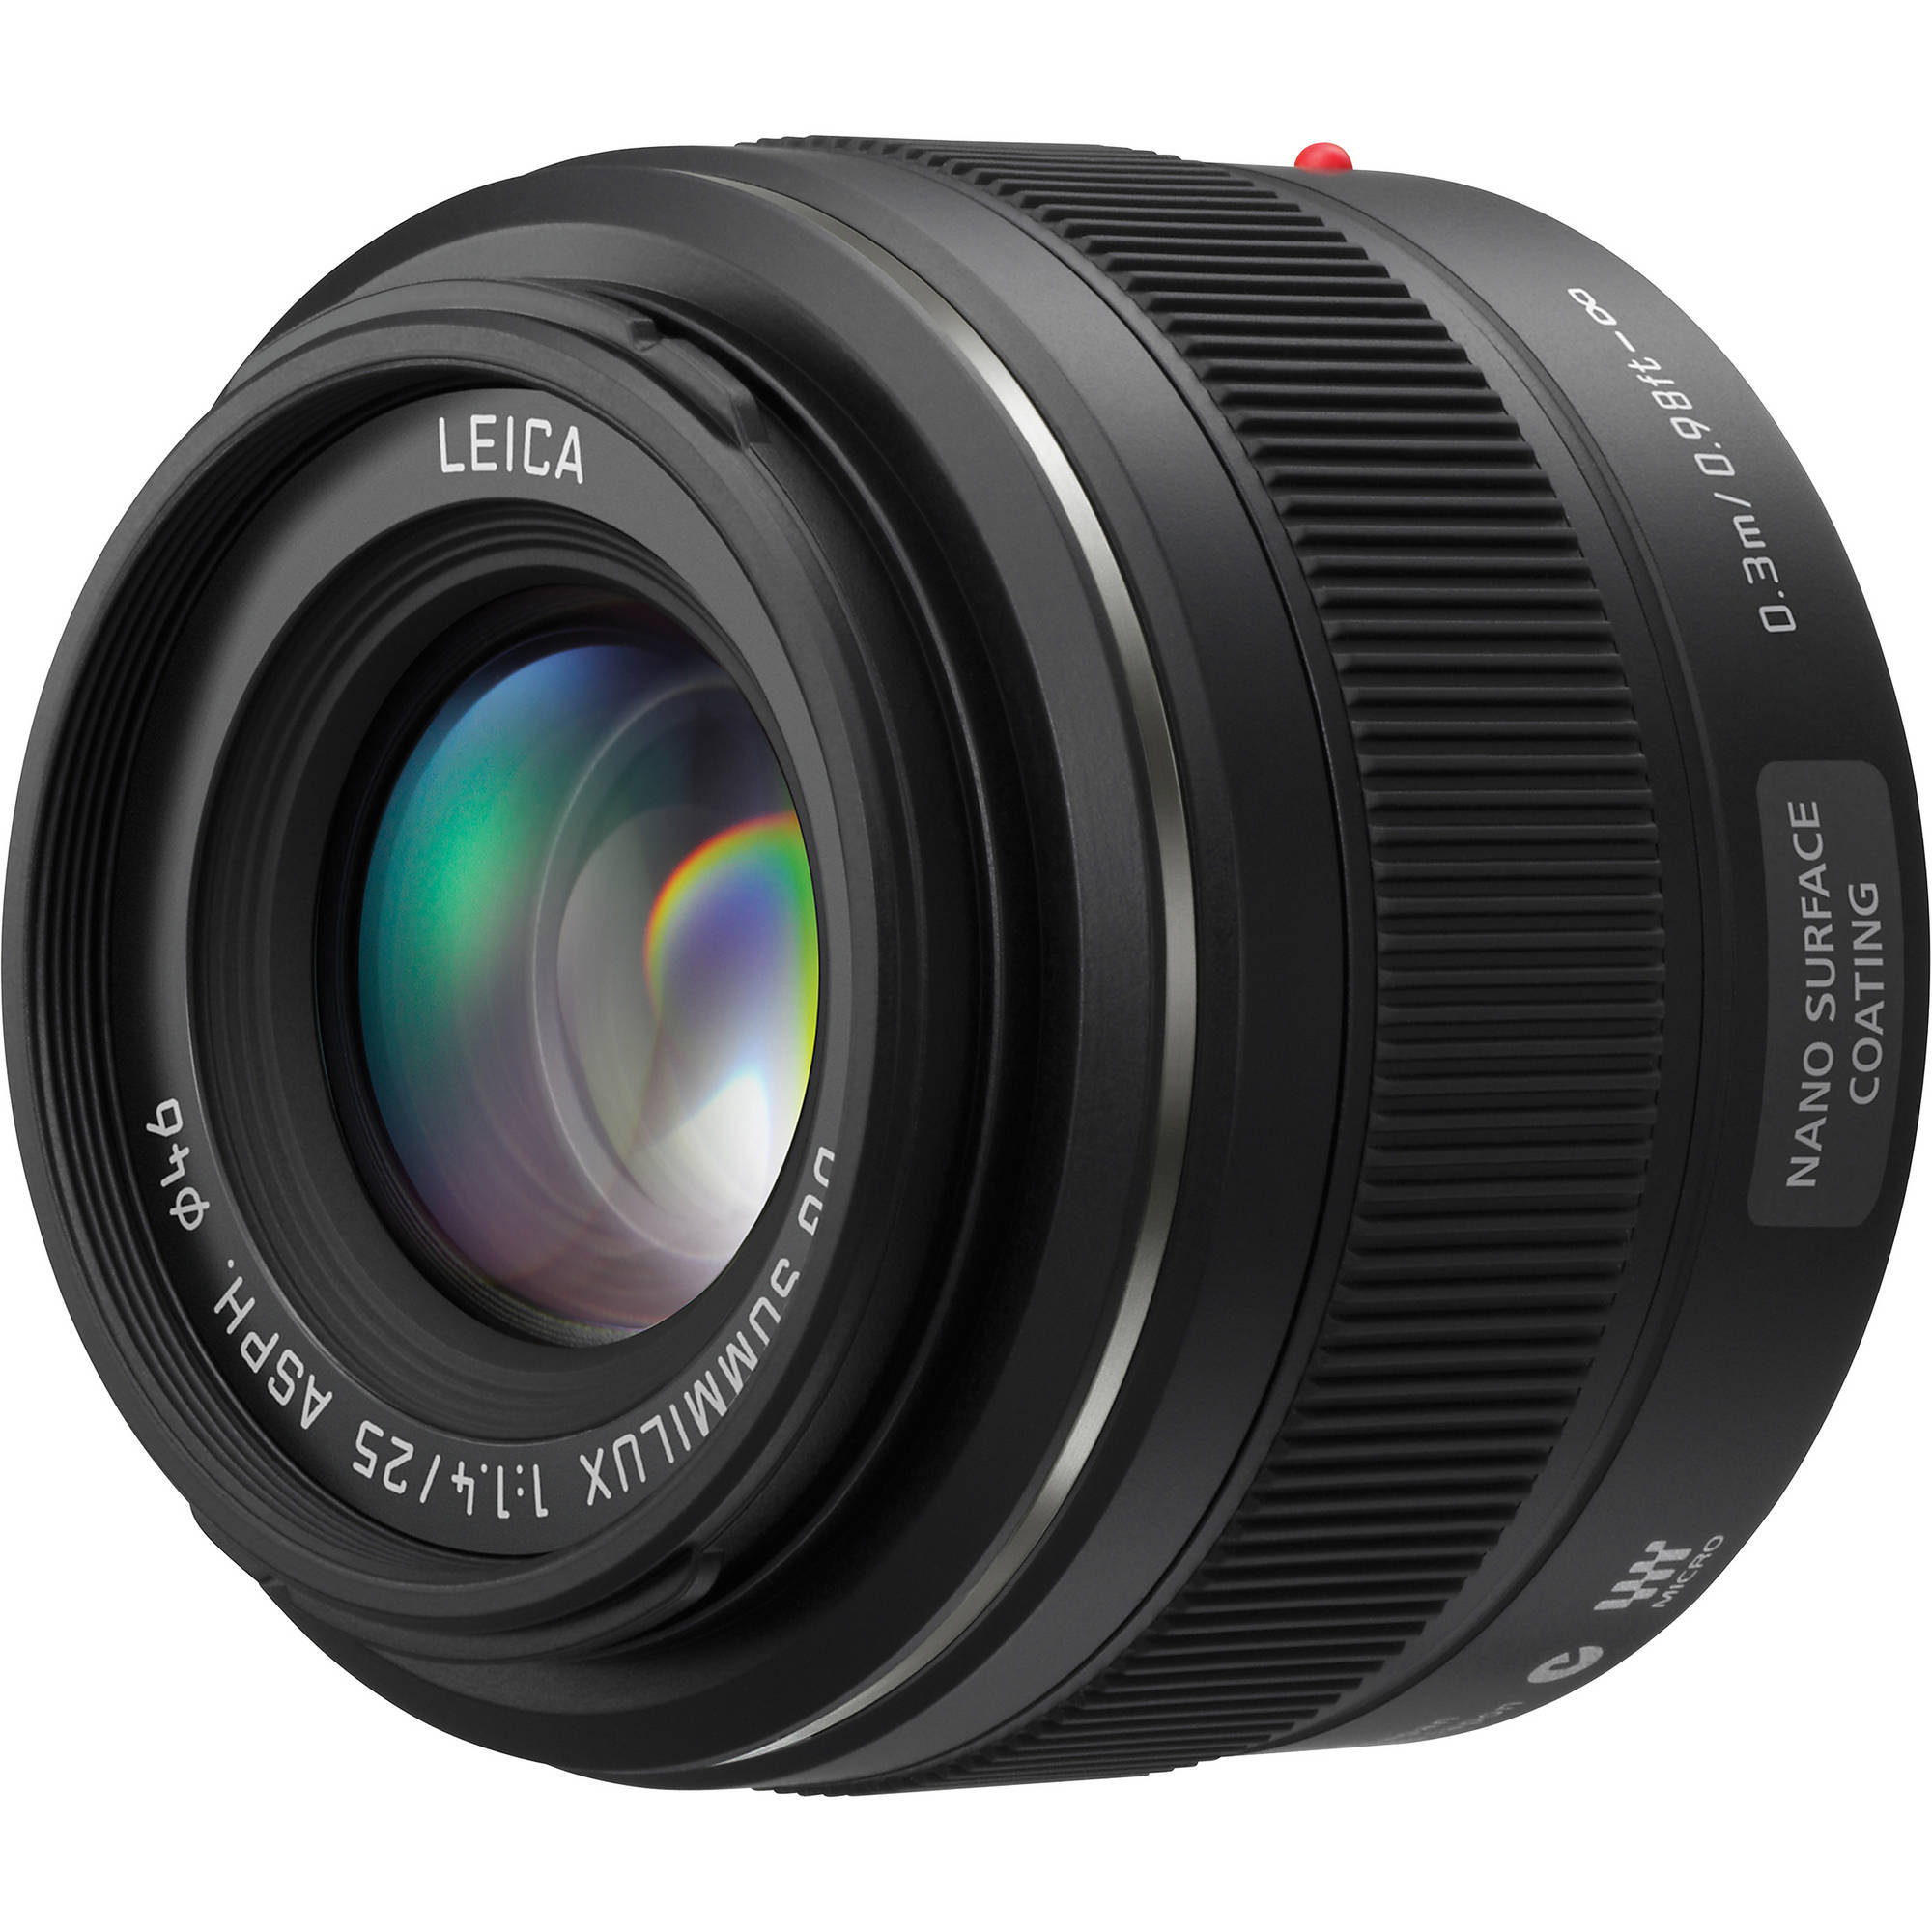 Image of Panasonic LEICA DG SUMMILUX 25mm f/1.4 ASPH Lens H-X025E